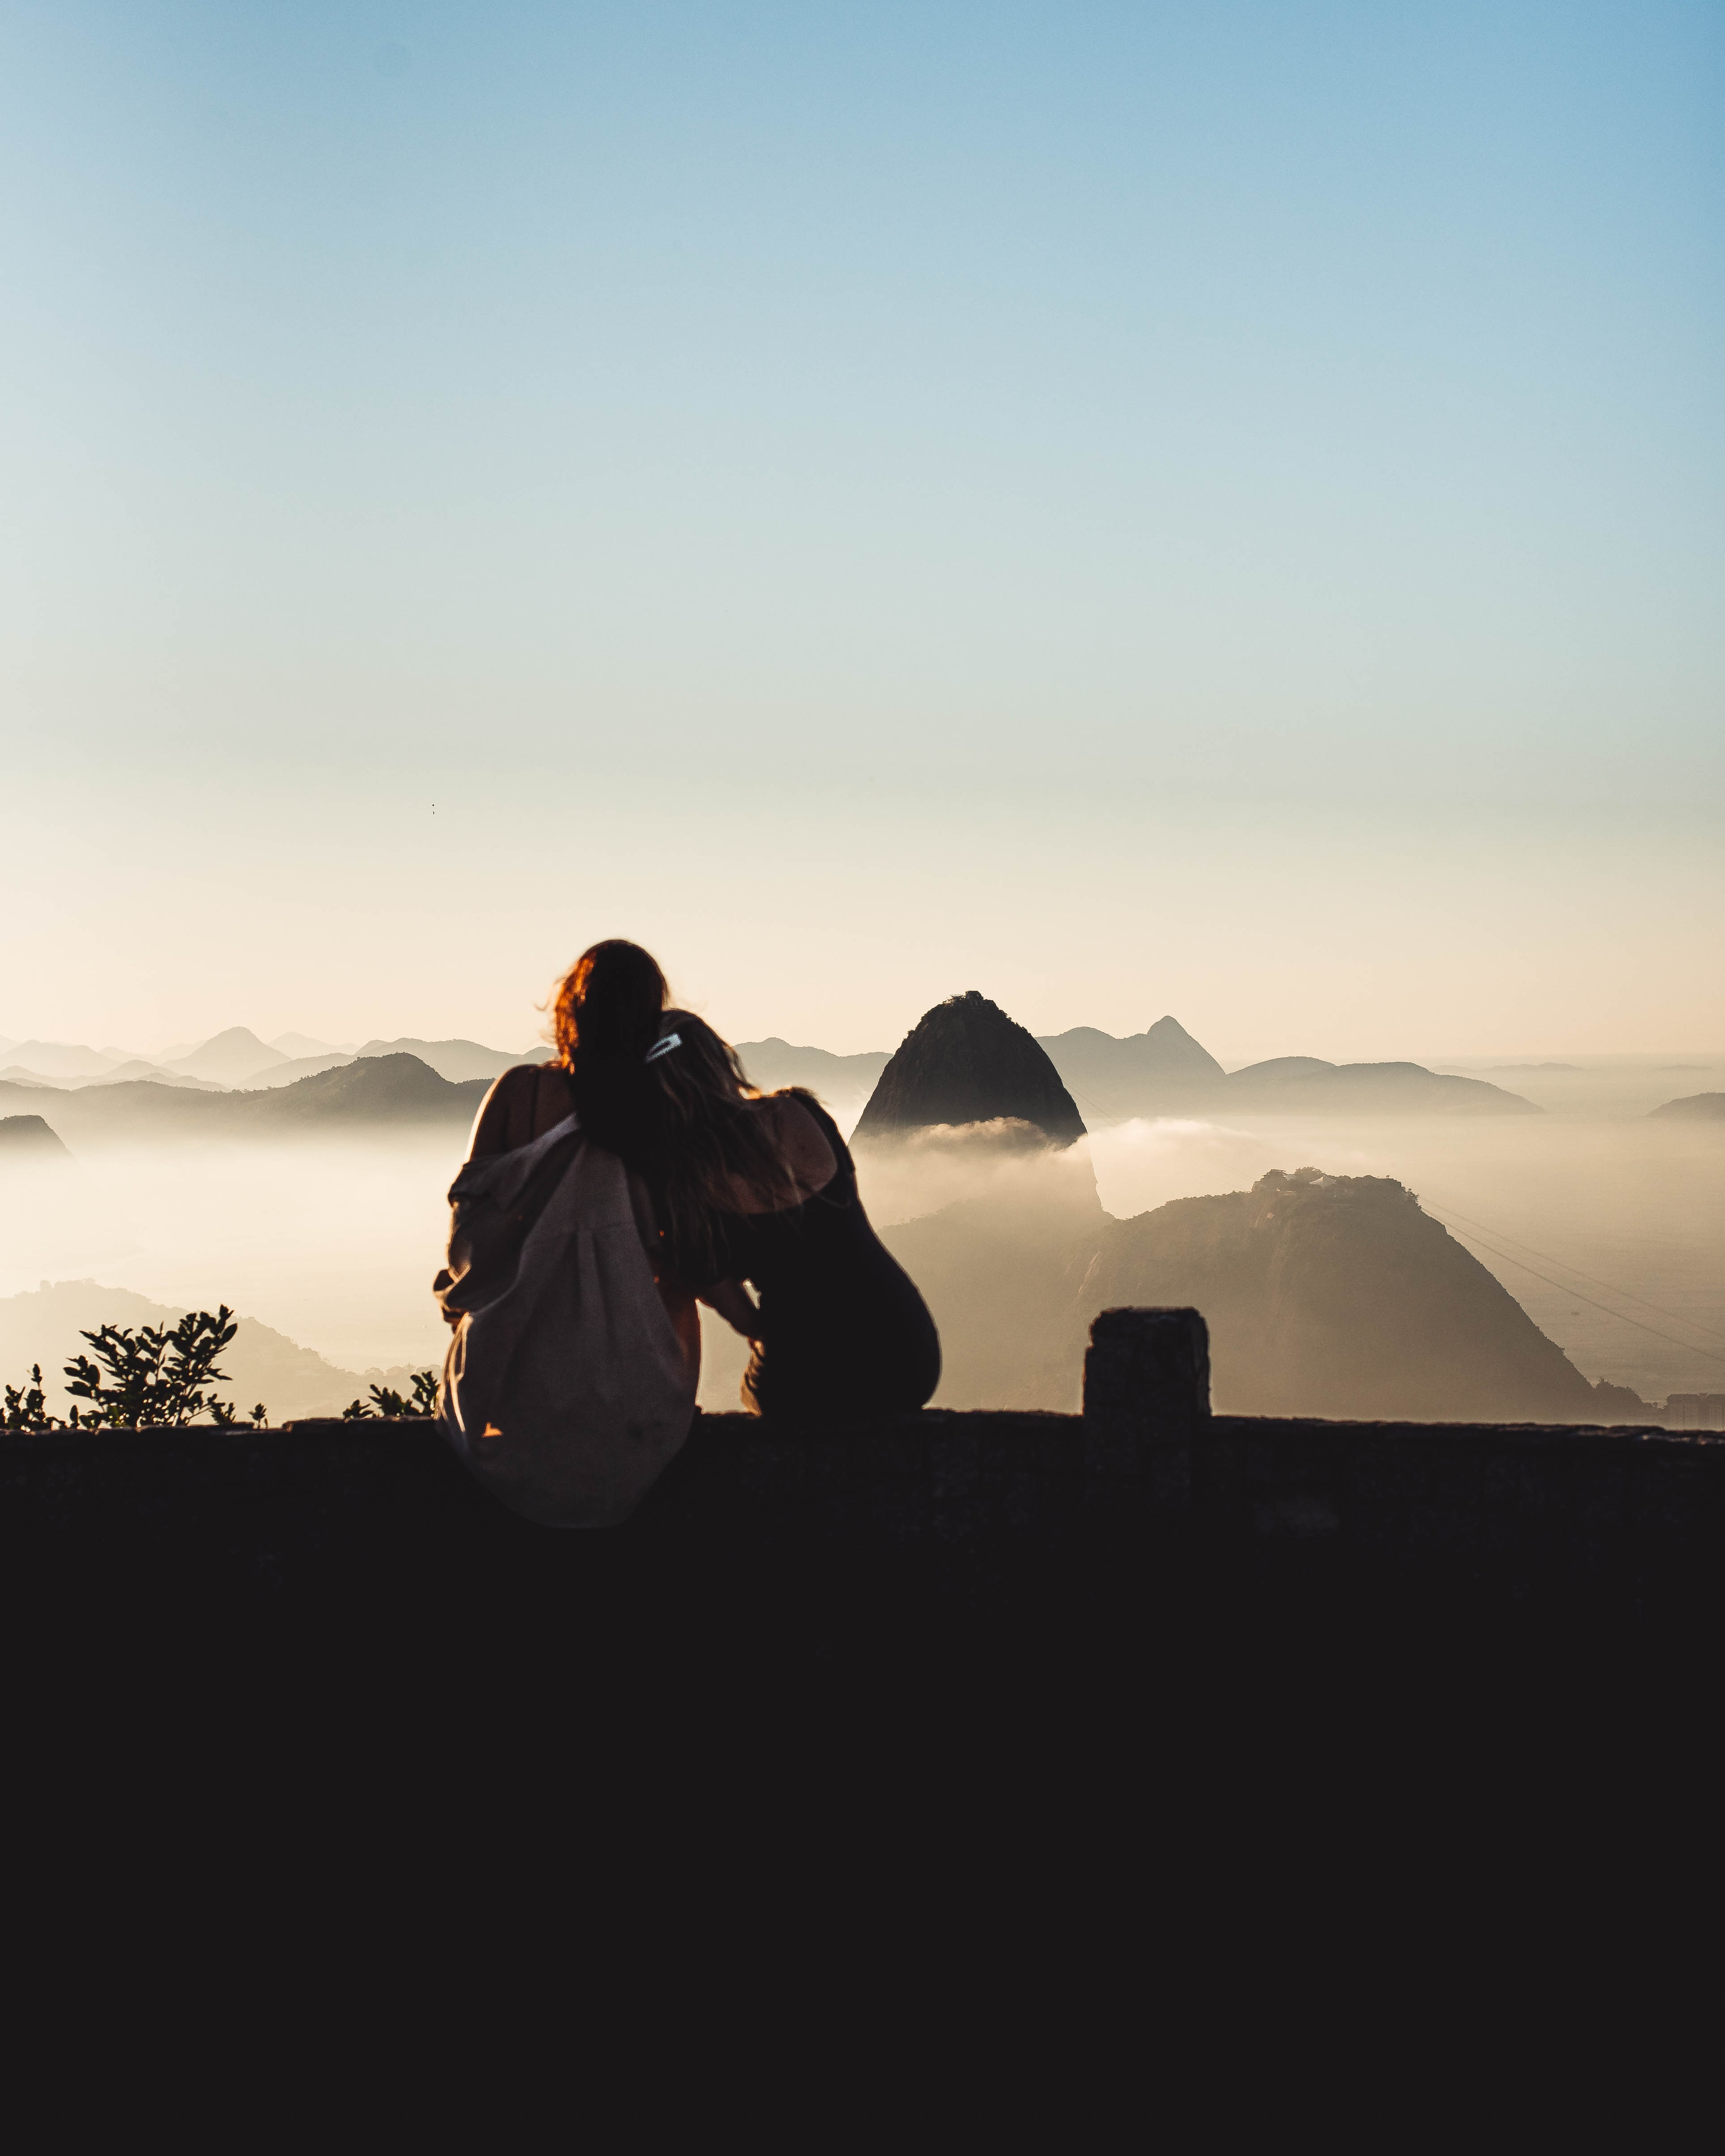 112903 download wallpaper Miscellanea, Miscellaneous, Girls, Girlfriends, Friendship, Fog, Mountains screensavers and pictures for free